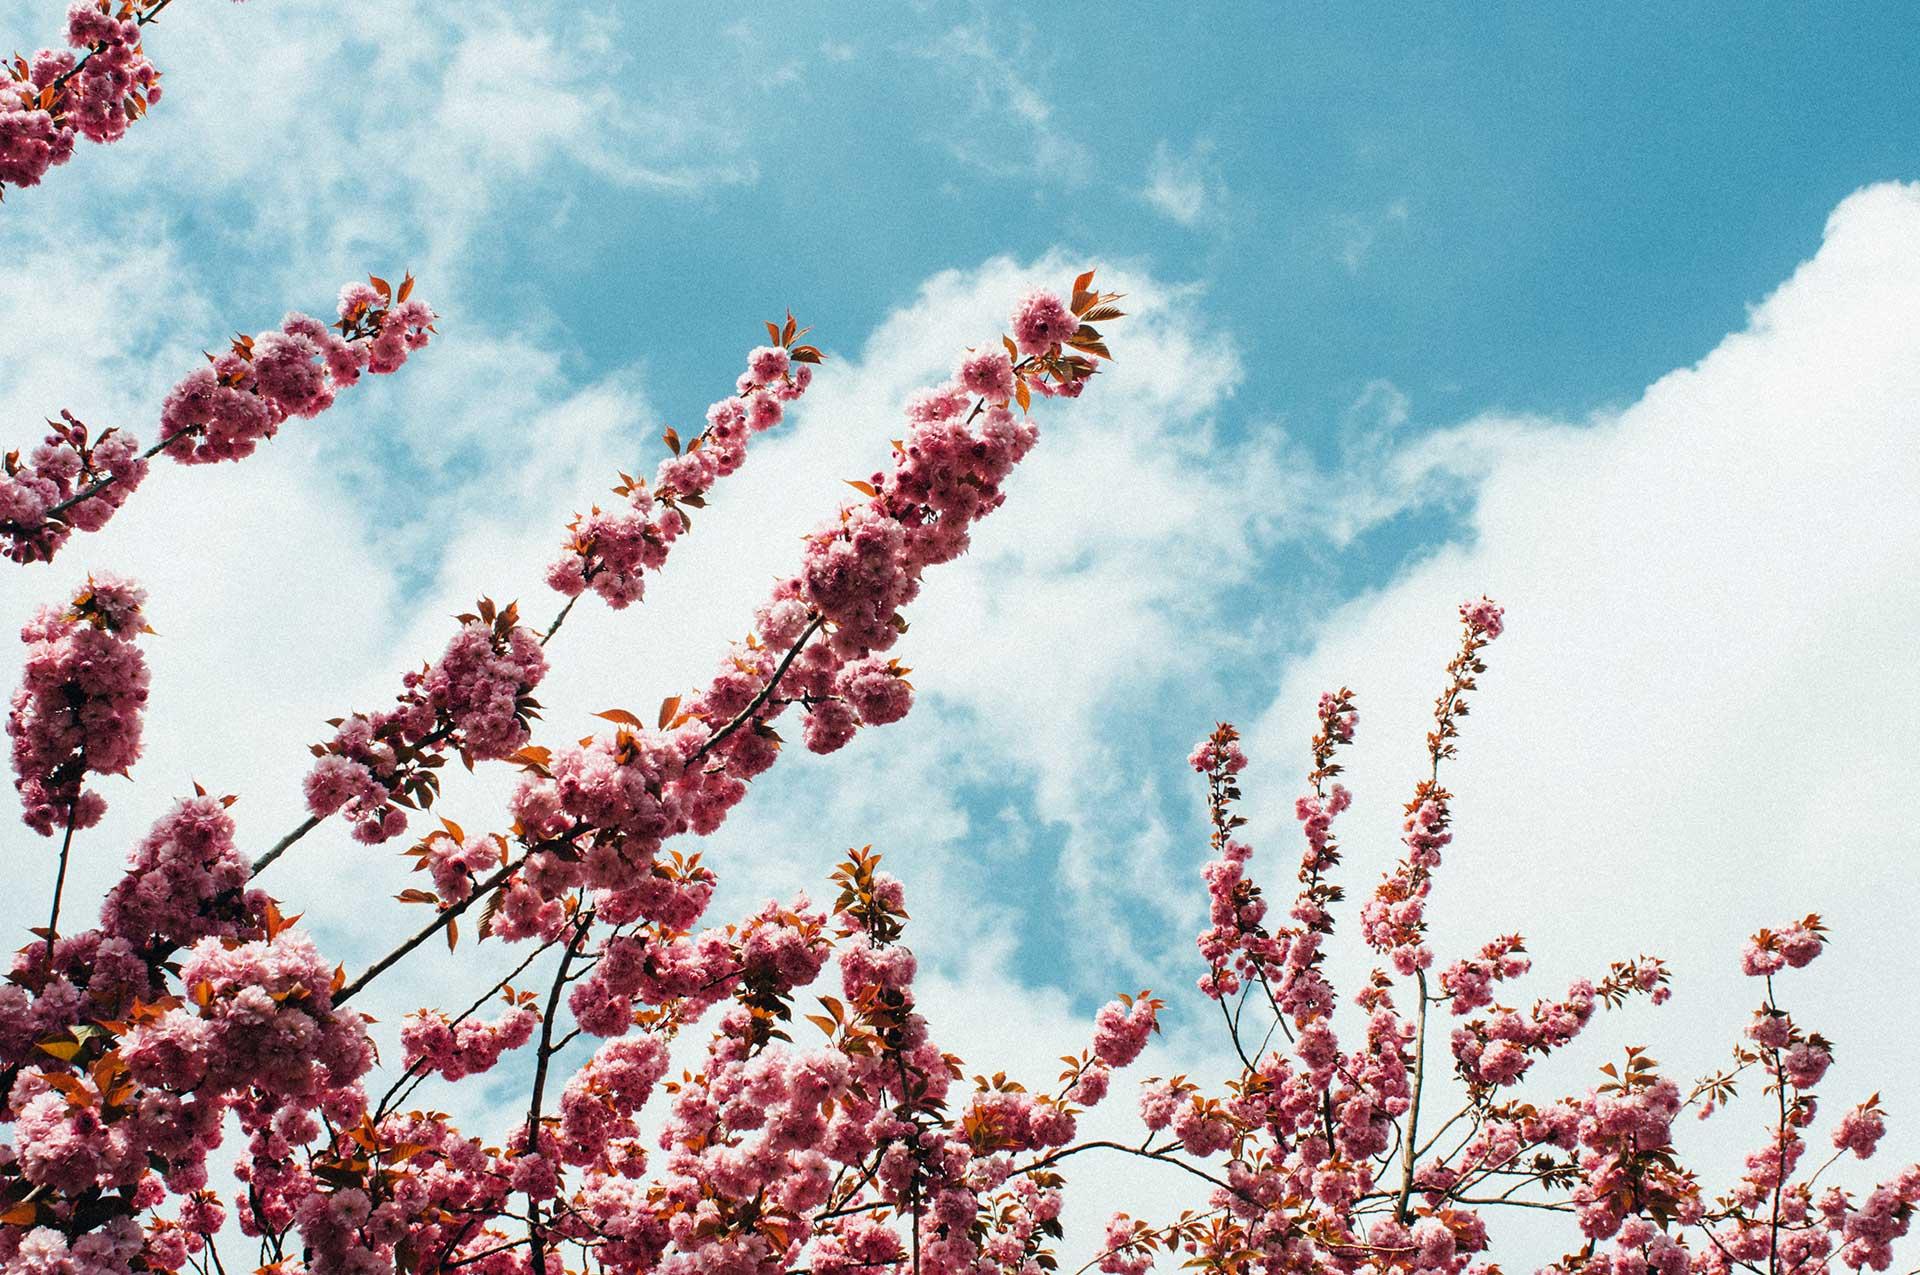 branches of a pink flowering tree against a blue sky with white clouds